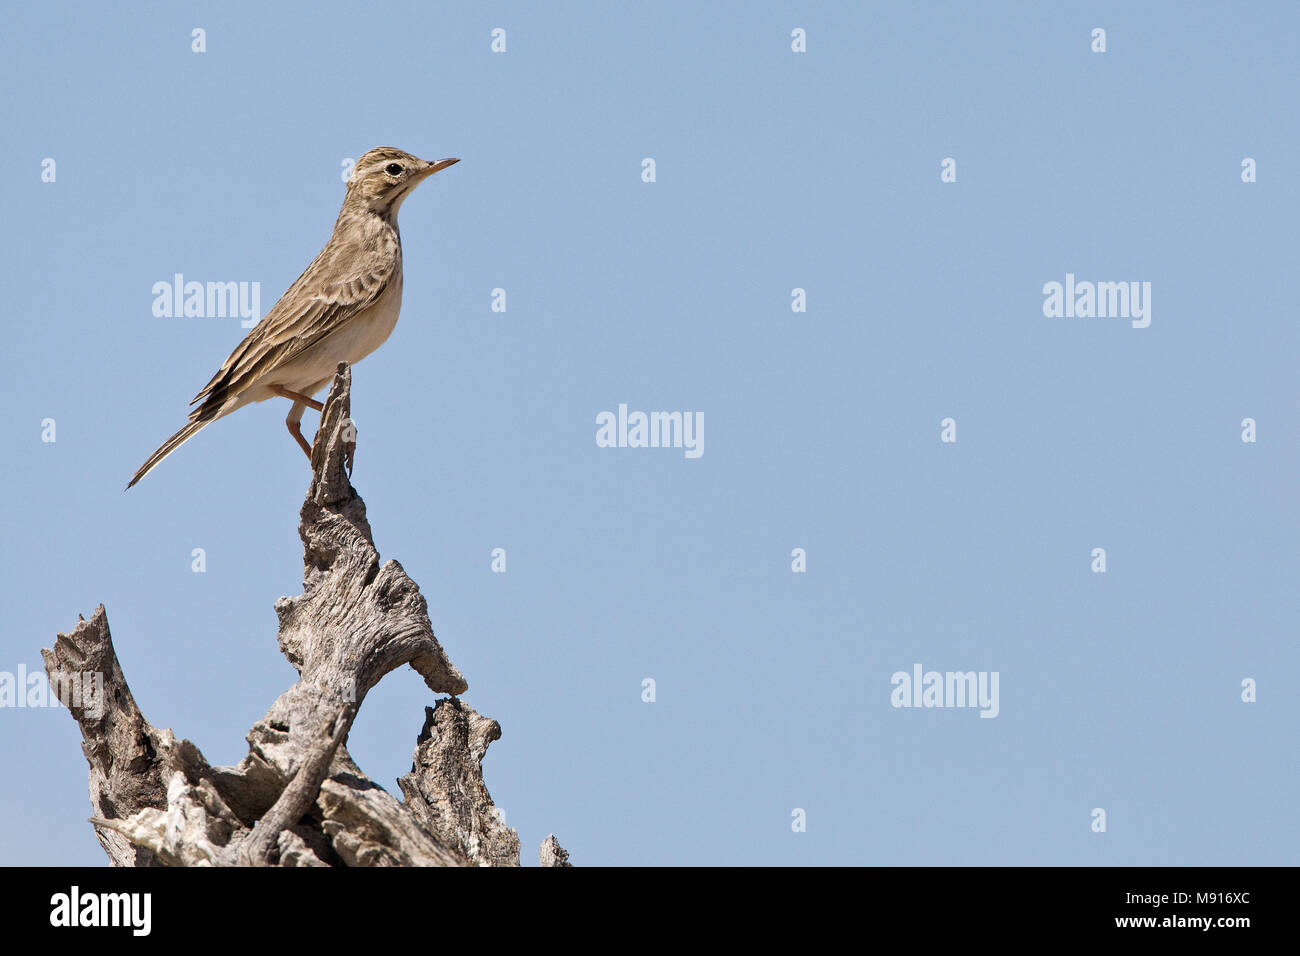 Kaneelpieper zittend op stronk Etosha NP Namibie, African Pipit perched at trunk Etosha NP Namibia - Stock Image